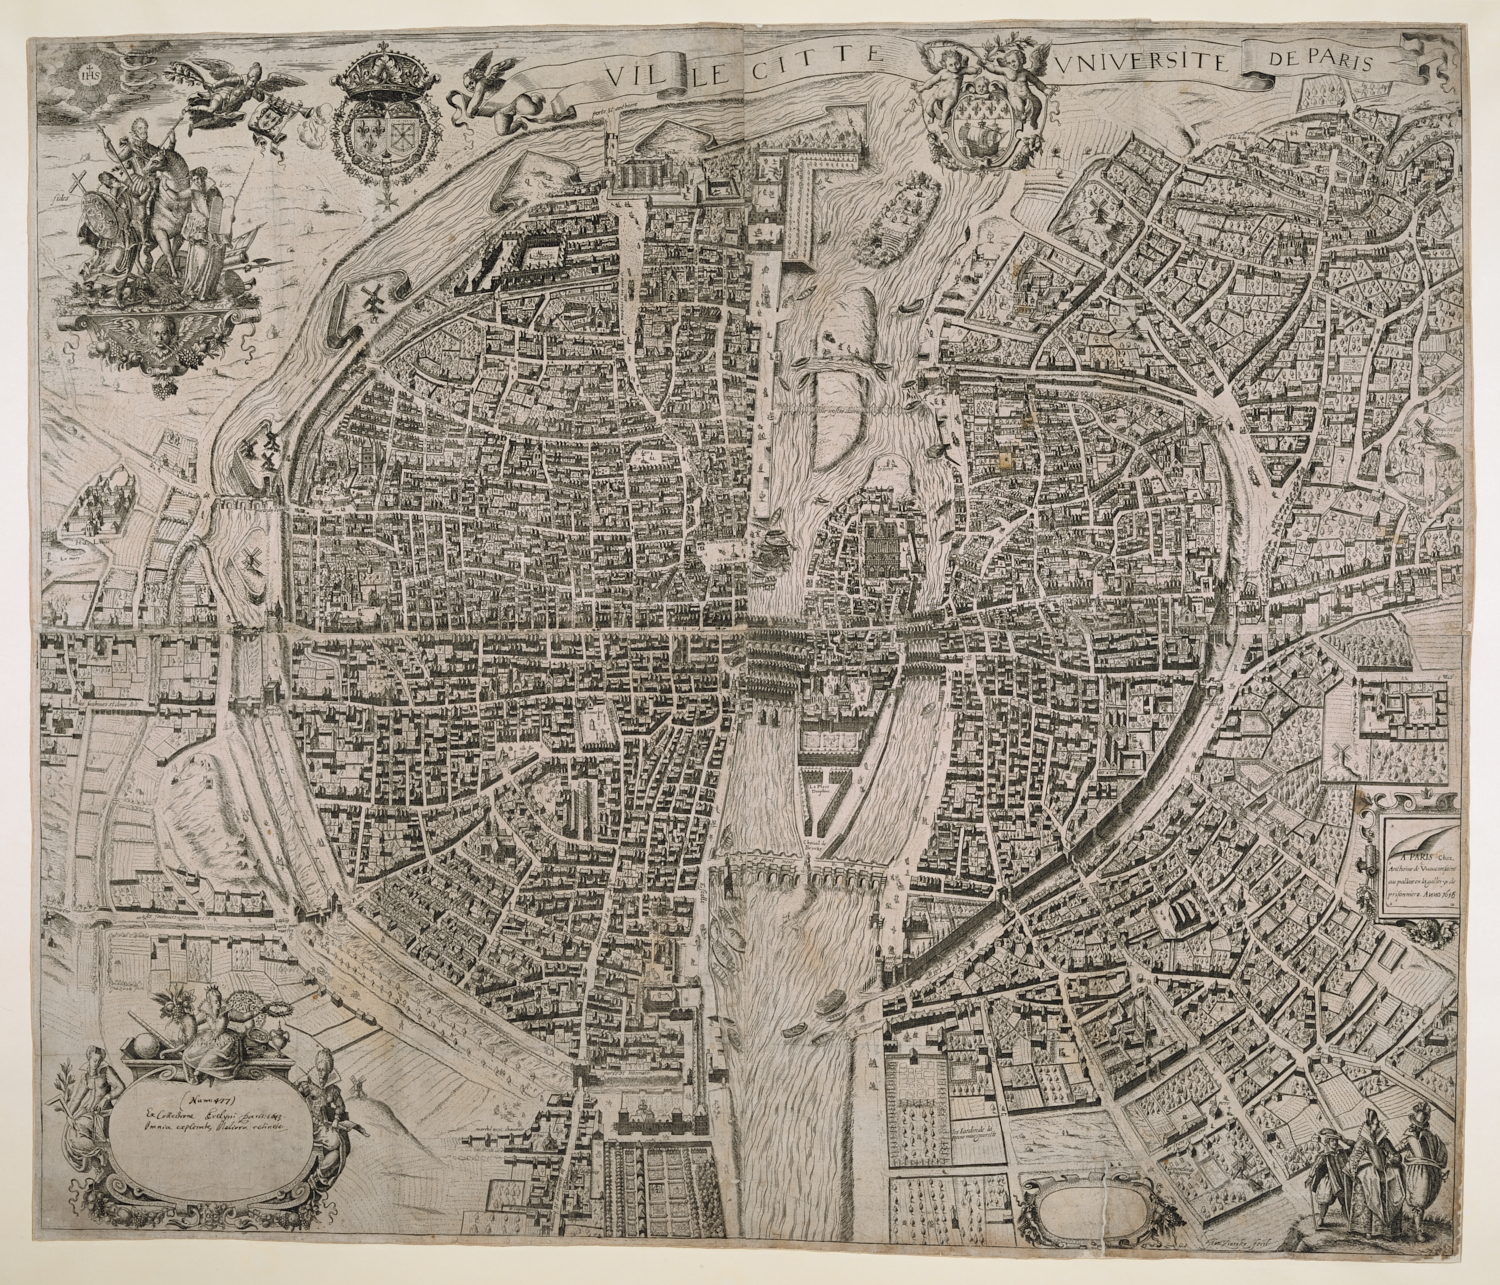 Jan Ziarnko (1575-1630), Ville Citte Universite de Paris, published by Anthonie de Vuauconsains, Paris, 1616, 67 x 78 cm, Maps CC.5.a.500.